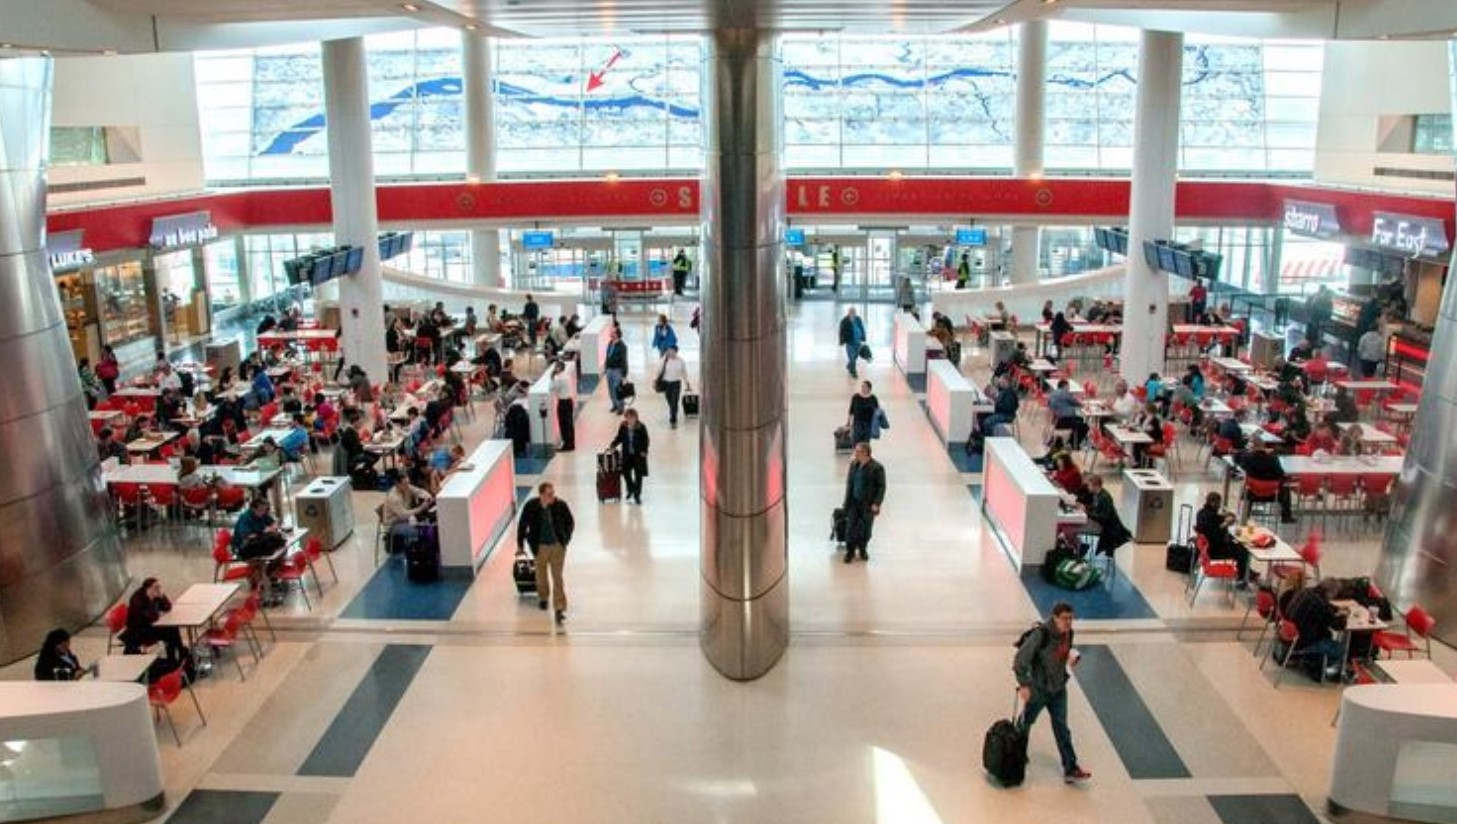 Why Philadelphia Airport Is Seeing Its Largest Number of Passengers in a Decade